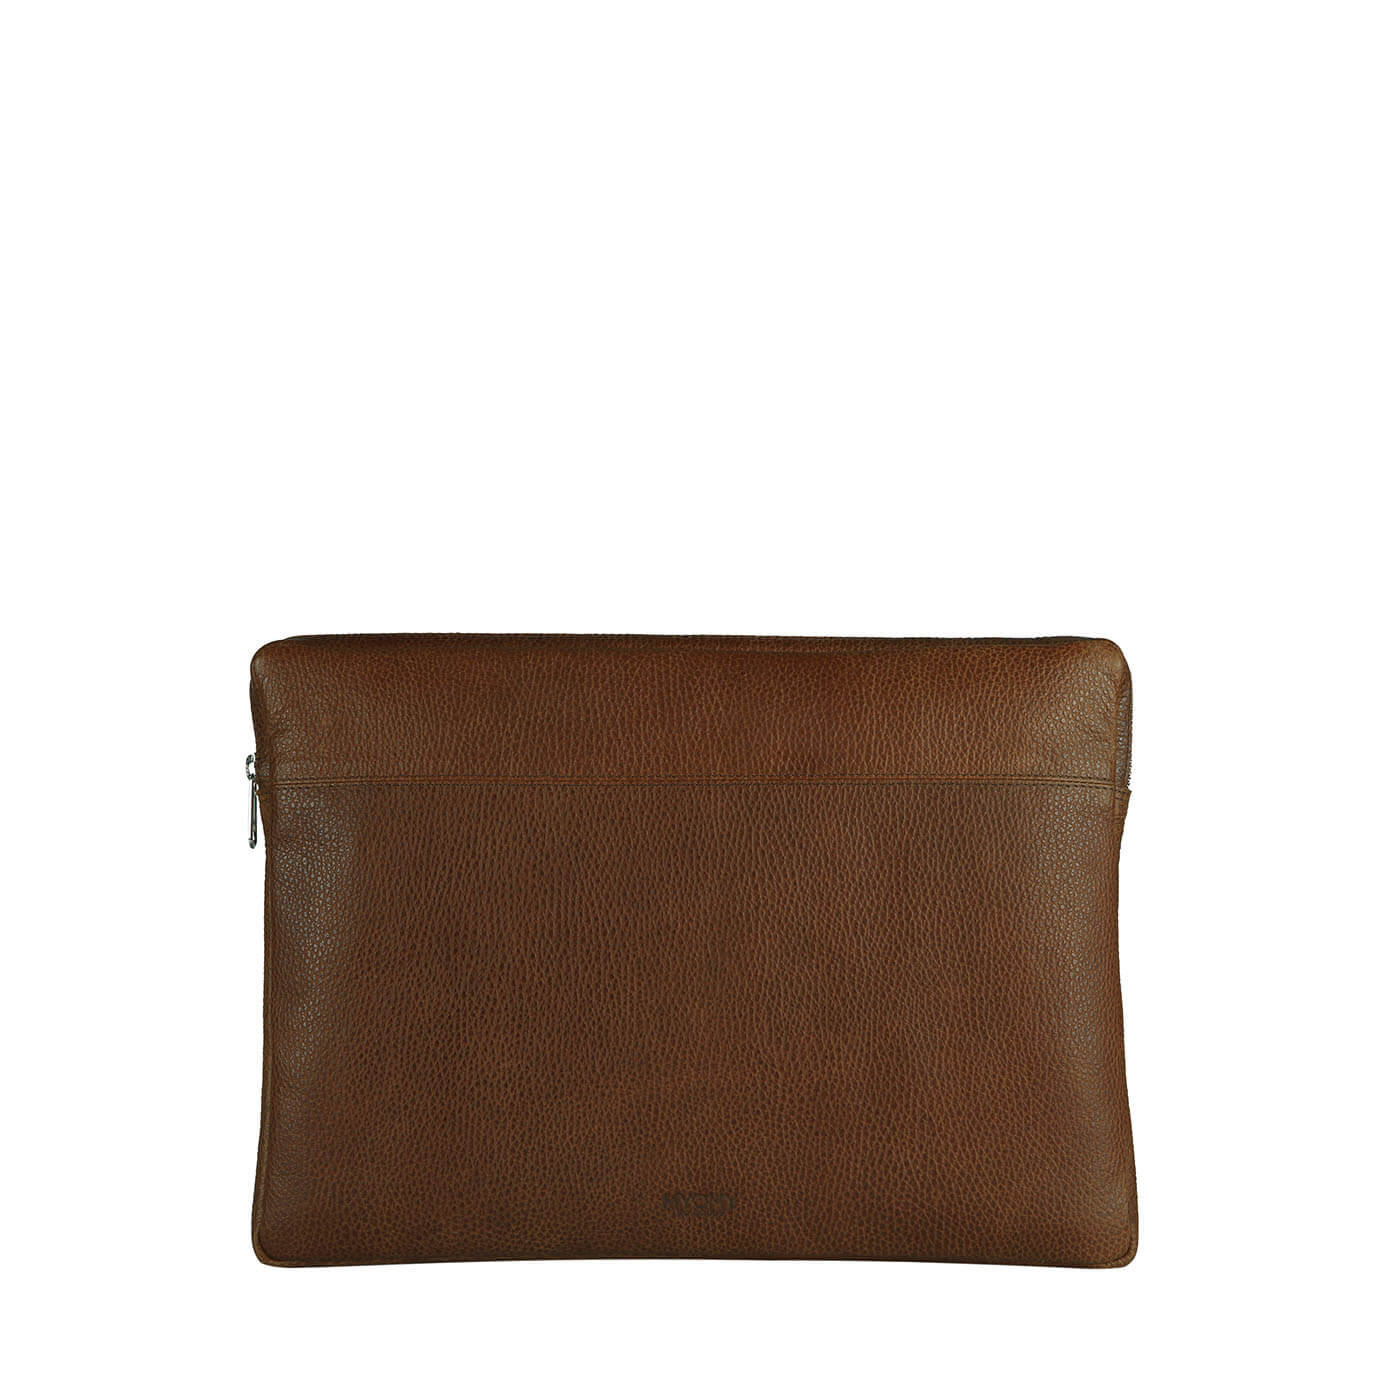 MY PHILIP BAG Laptop Sleeve 15 inch - rambler brandy